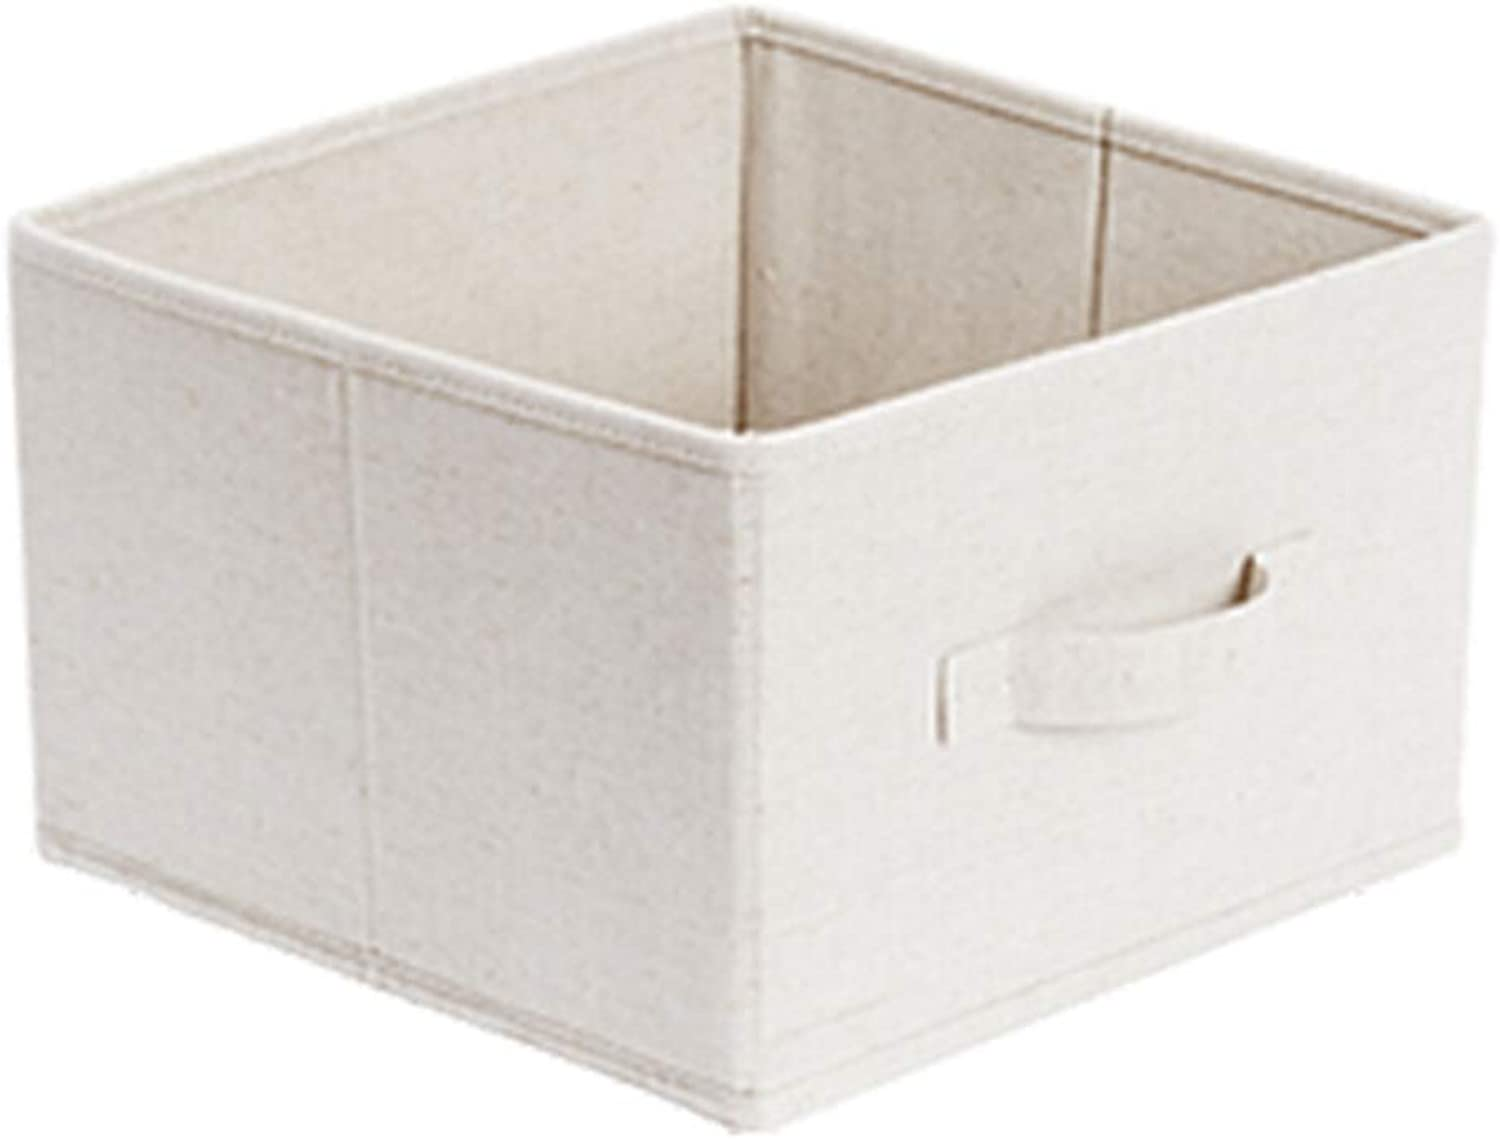 Storage Box Storage Bins Baskets Toy Box Home Containers Cubes Bin Box Gift Baskets Storage Ches-Detachable Folding Storage Box JINRONG (color   White Without Cover, Size   29  29  19)